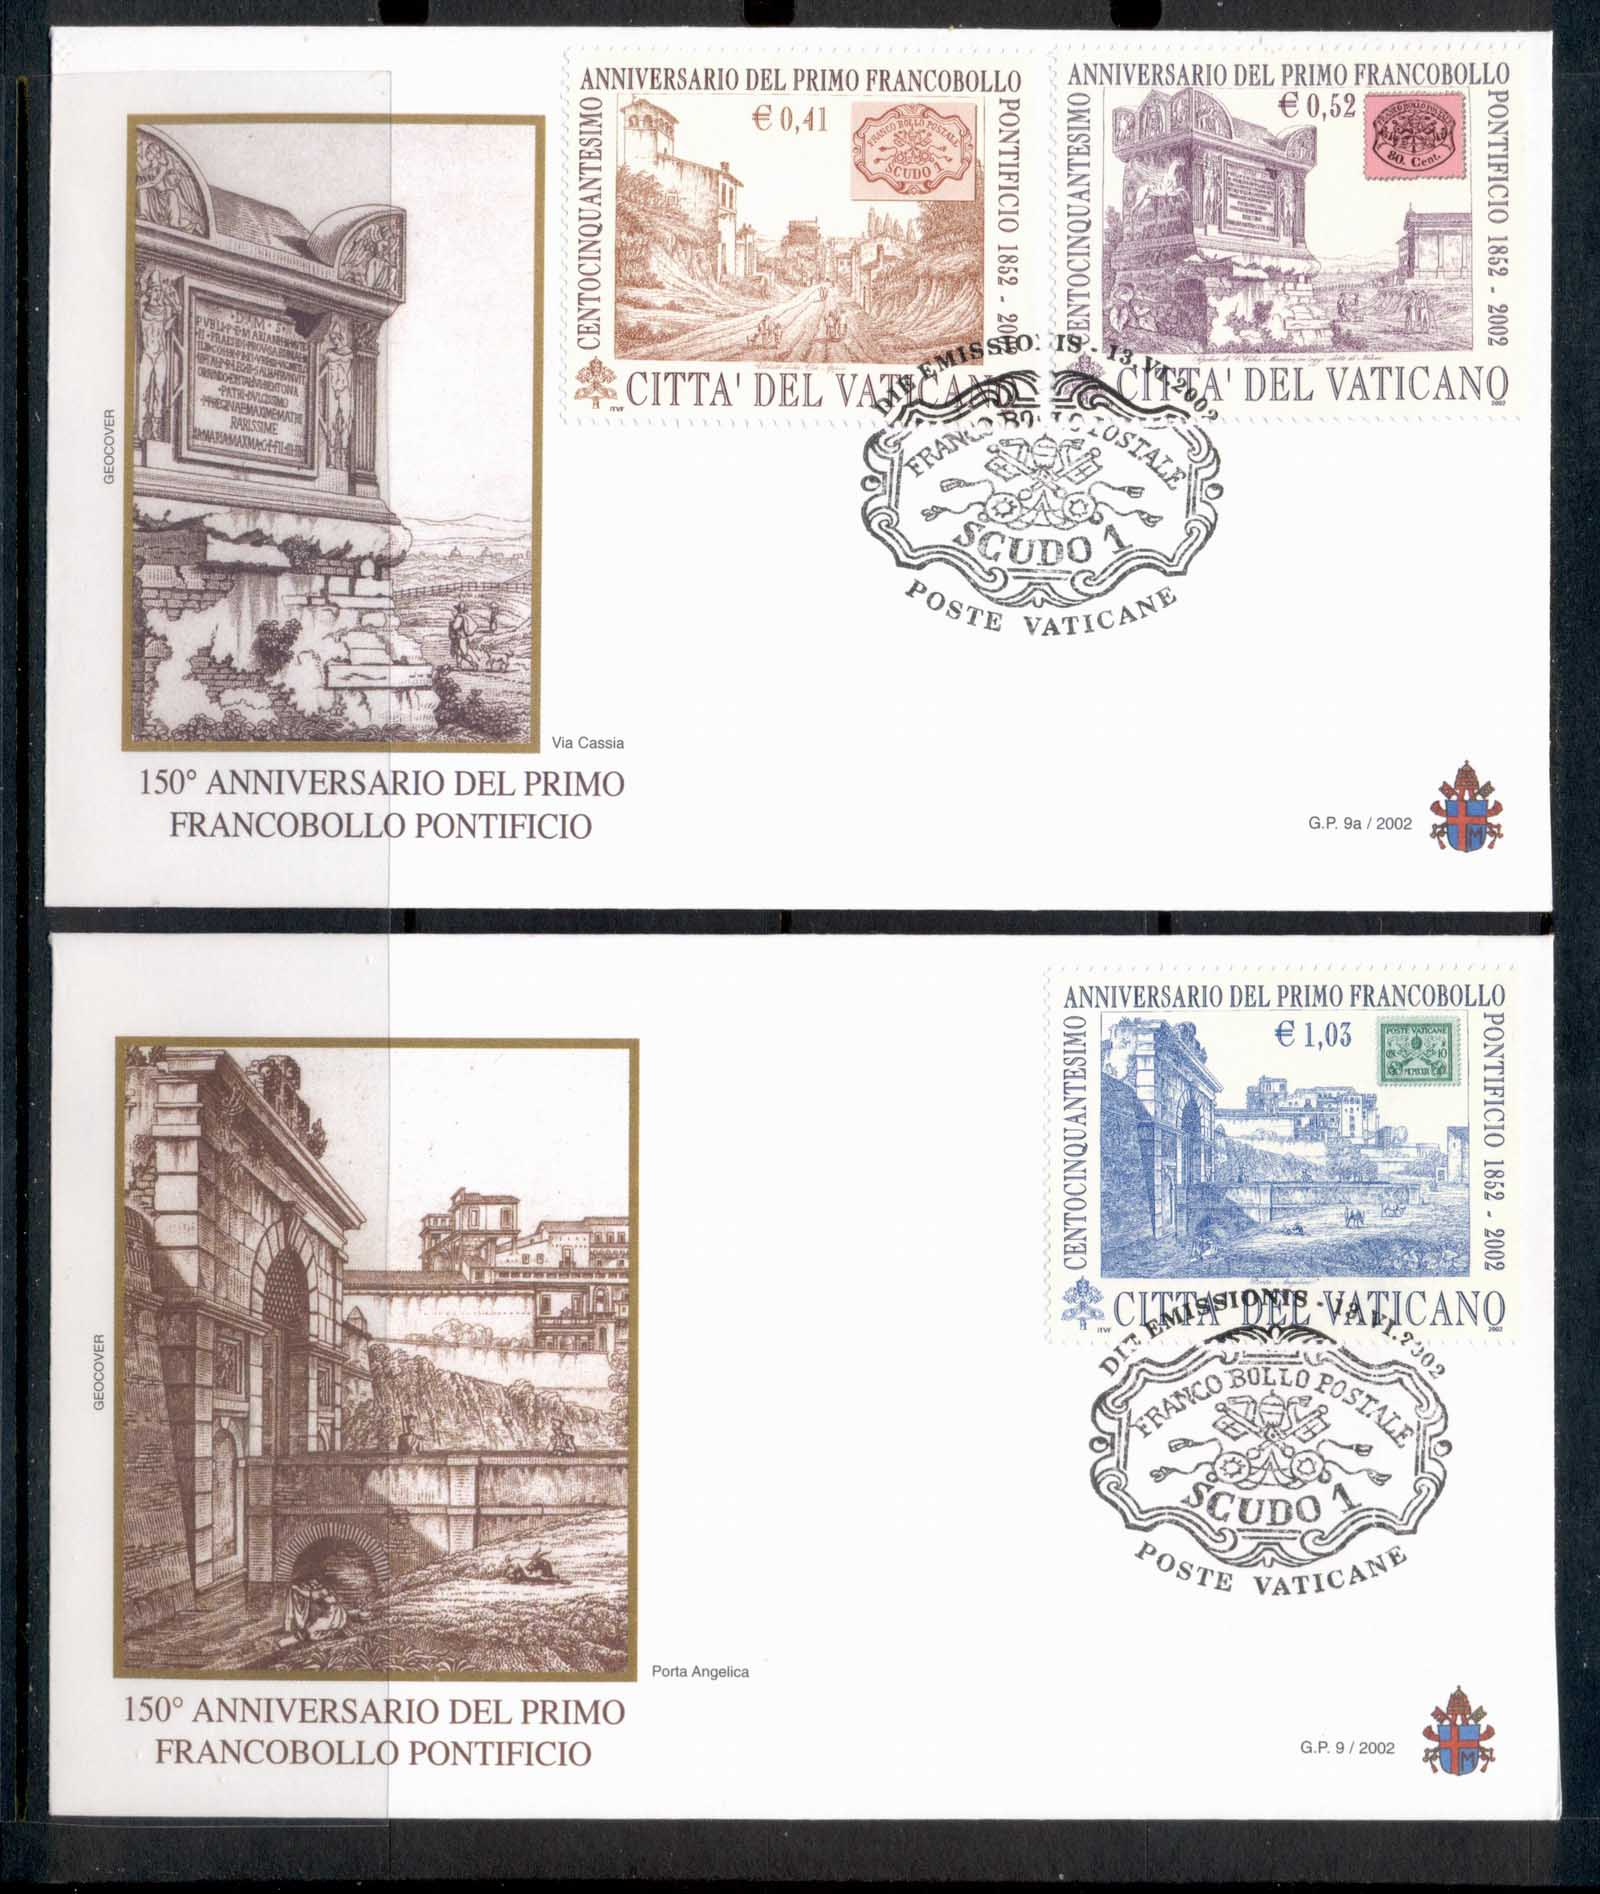 Vatican 2002 Roman States Postage Stamps 2x FDC